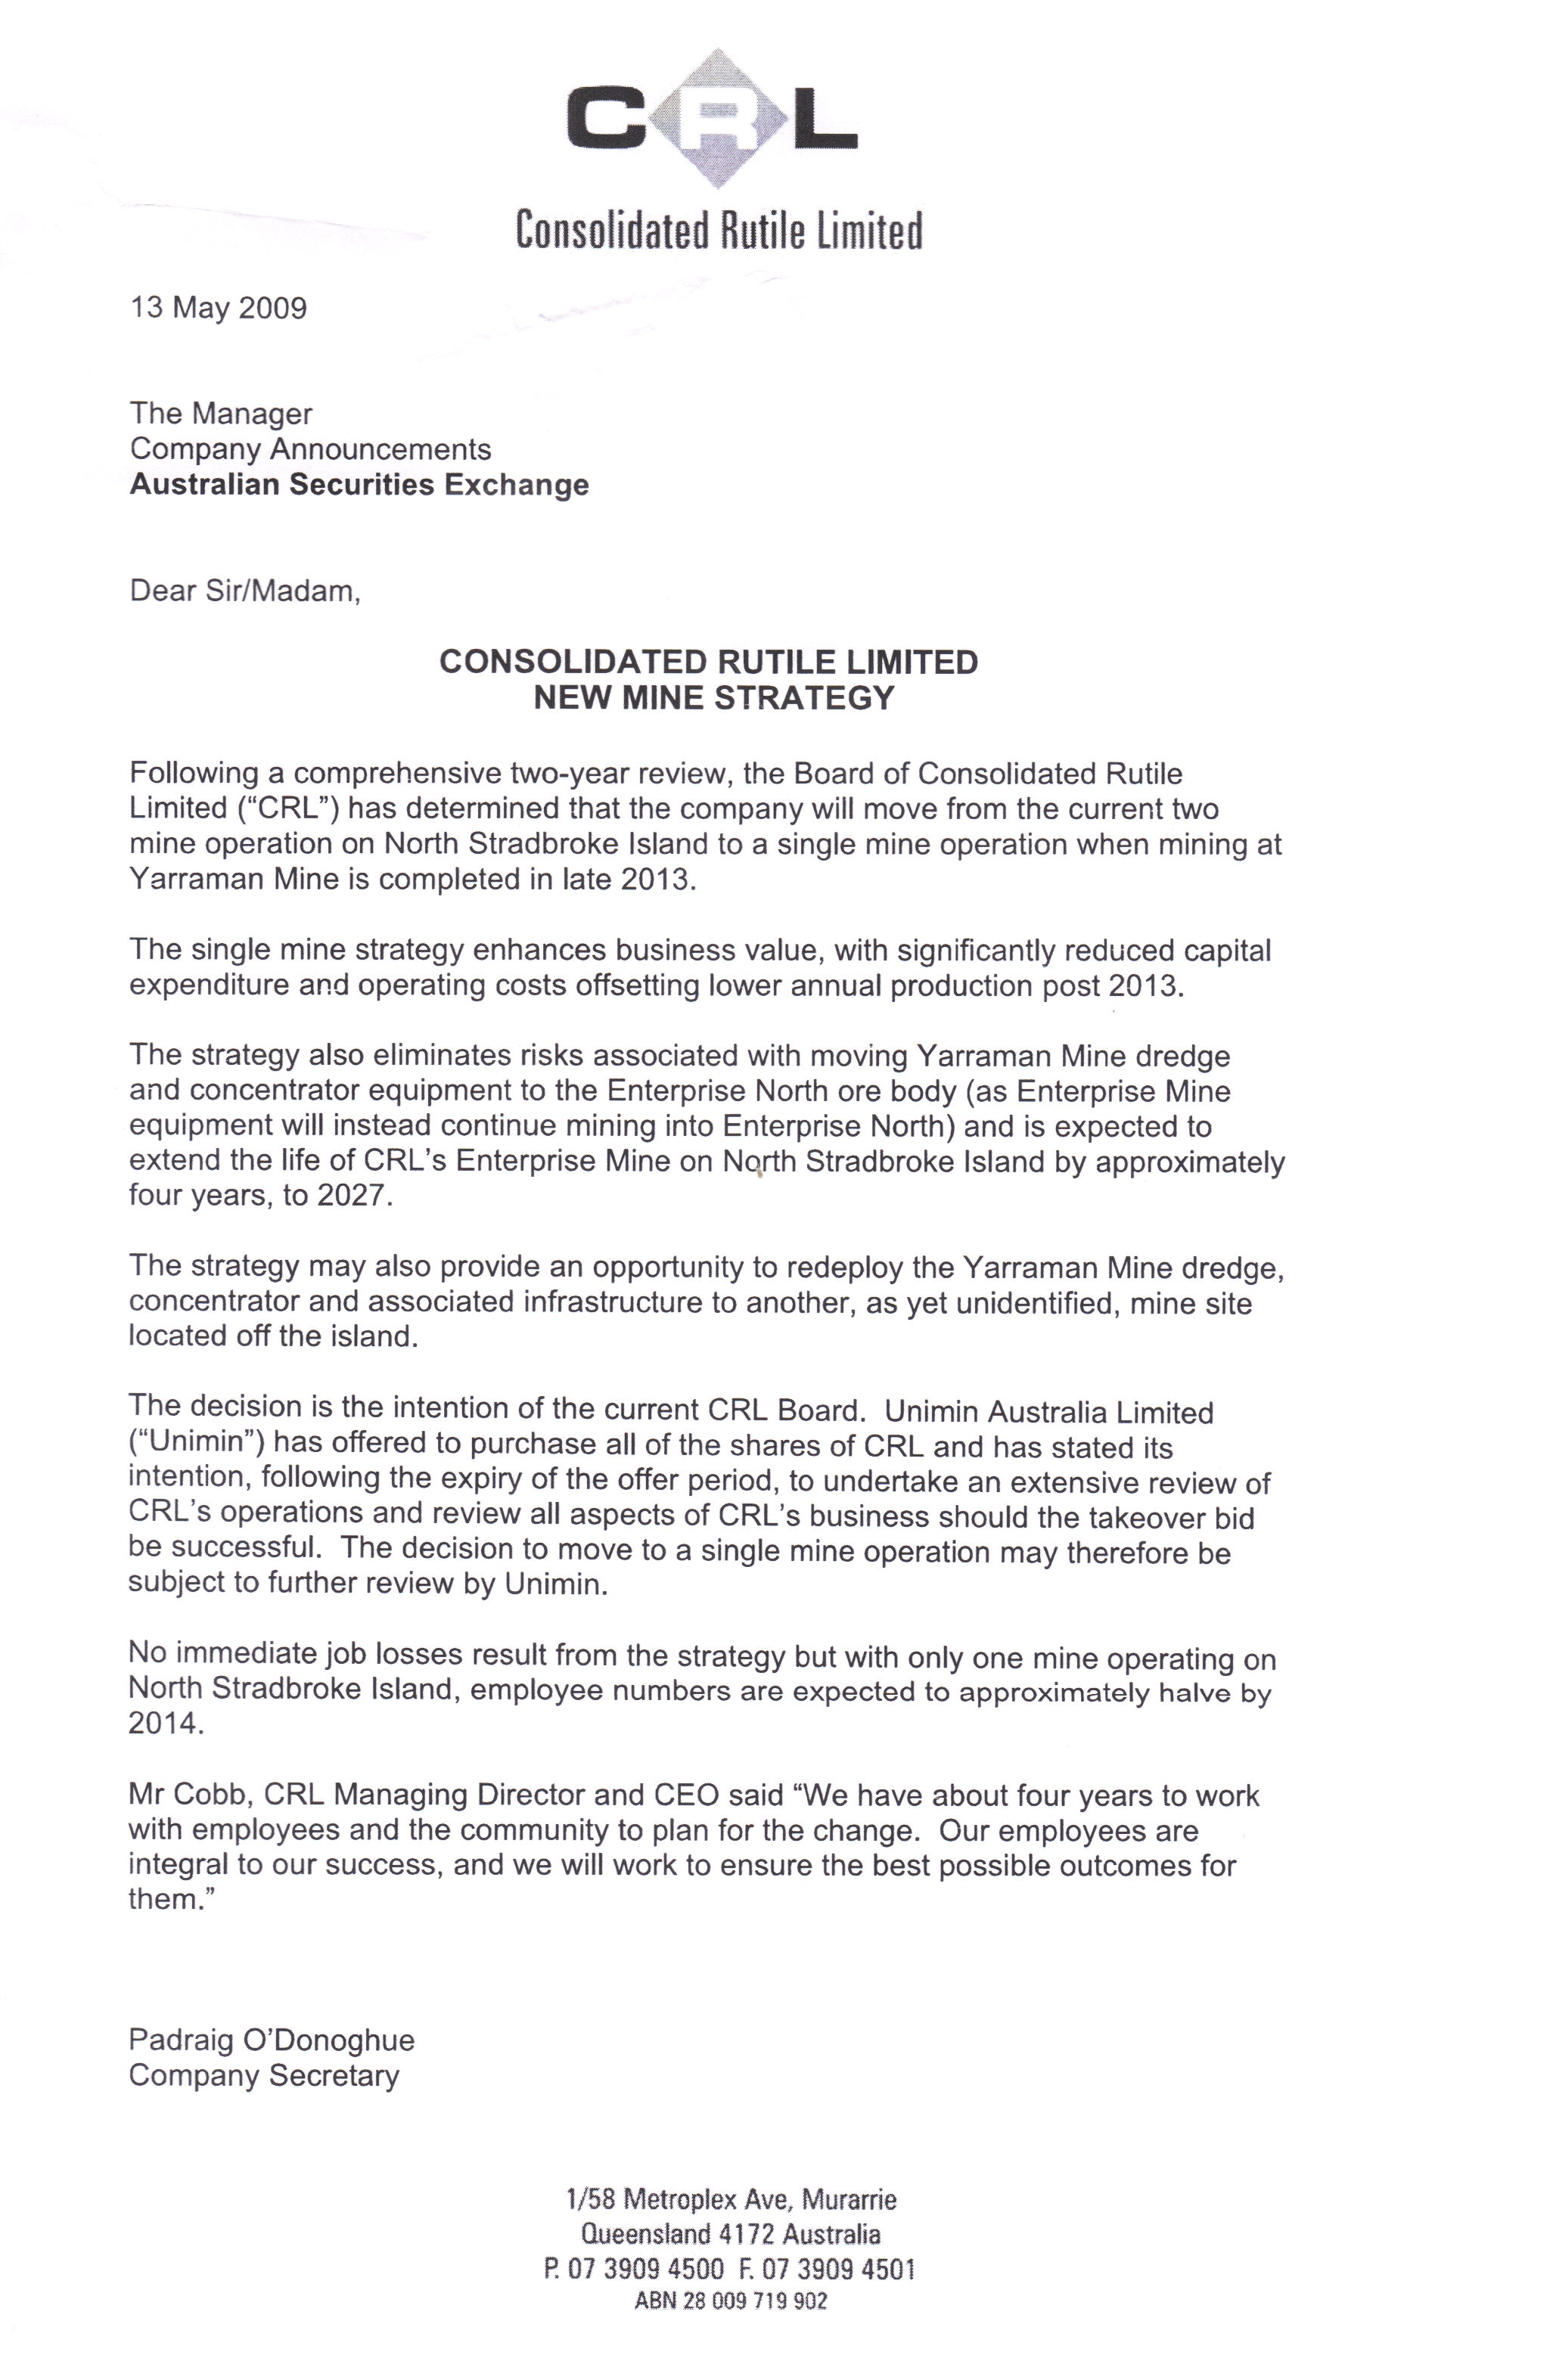 CRL letter to ASX re mining on Straddie